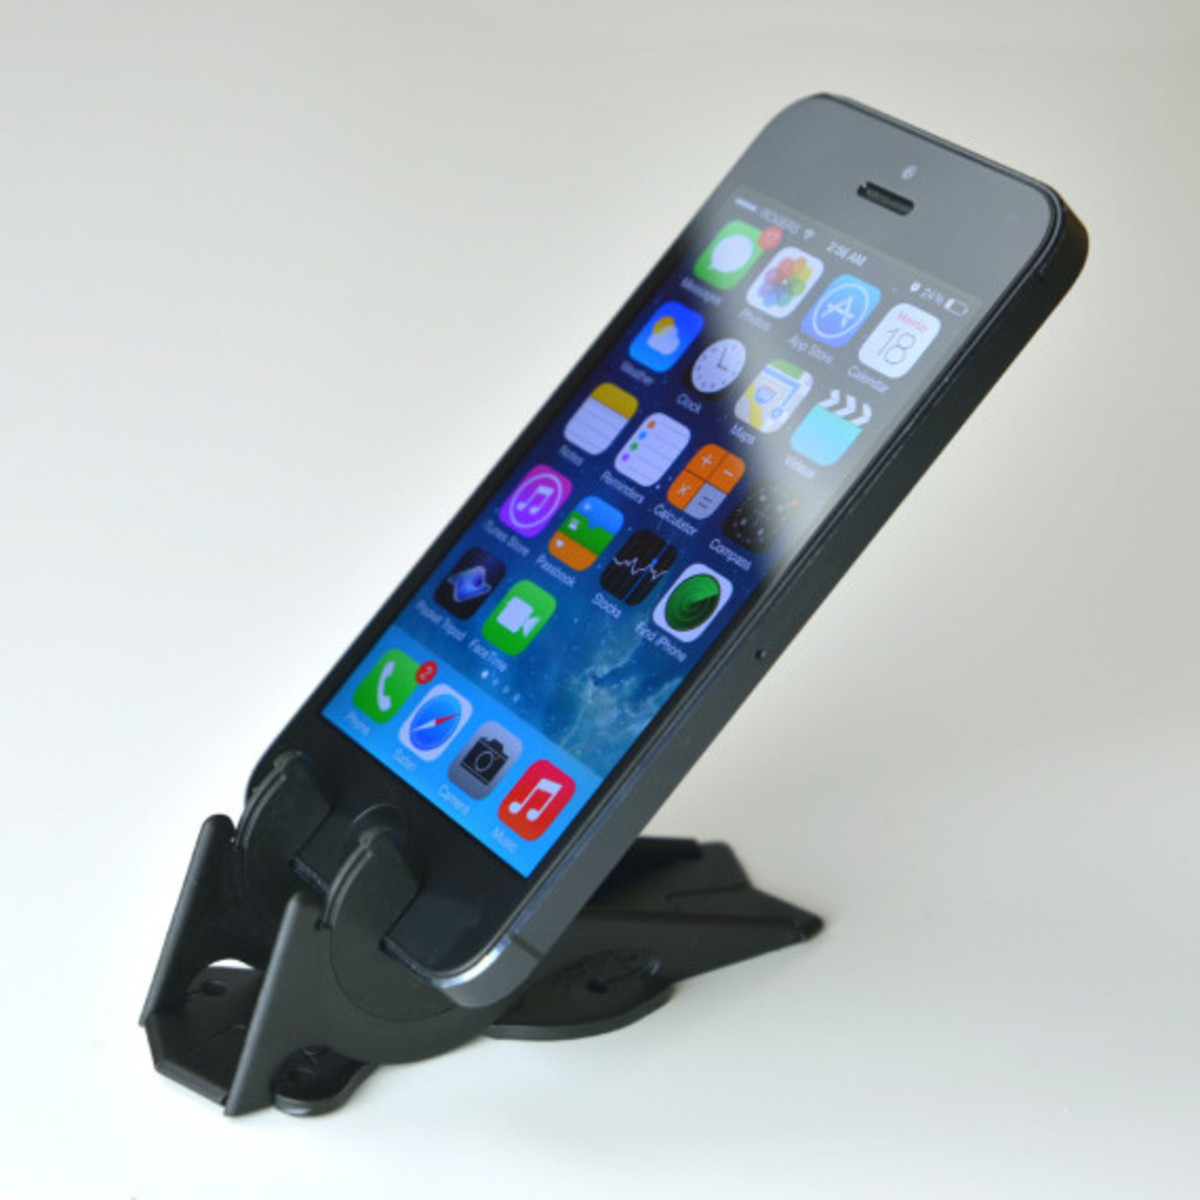 Pocket Tripod - Wallet-Sized Adjustable Stand for Apple iPhone - 4